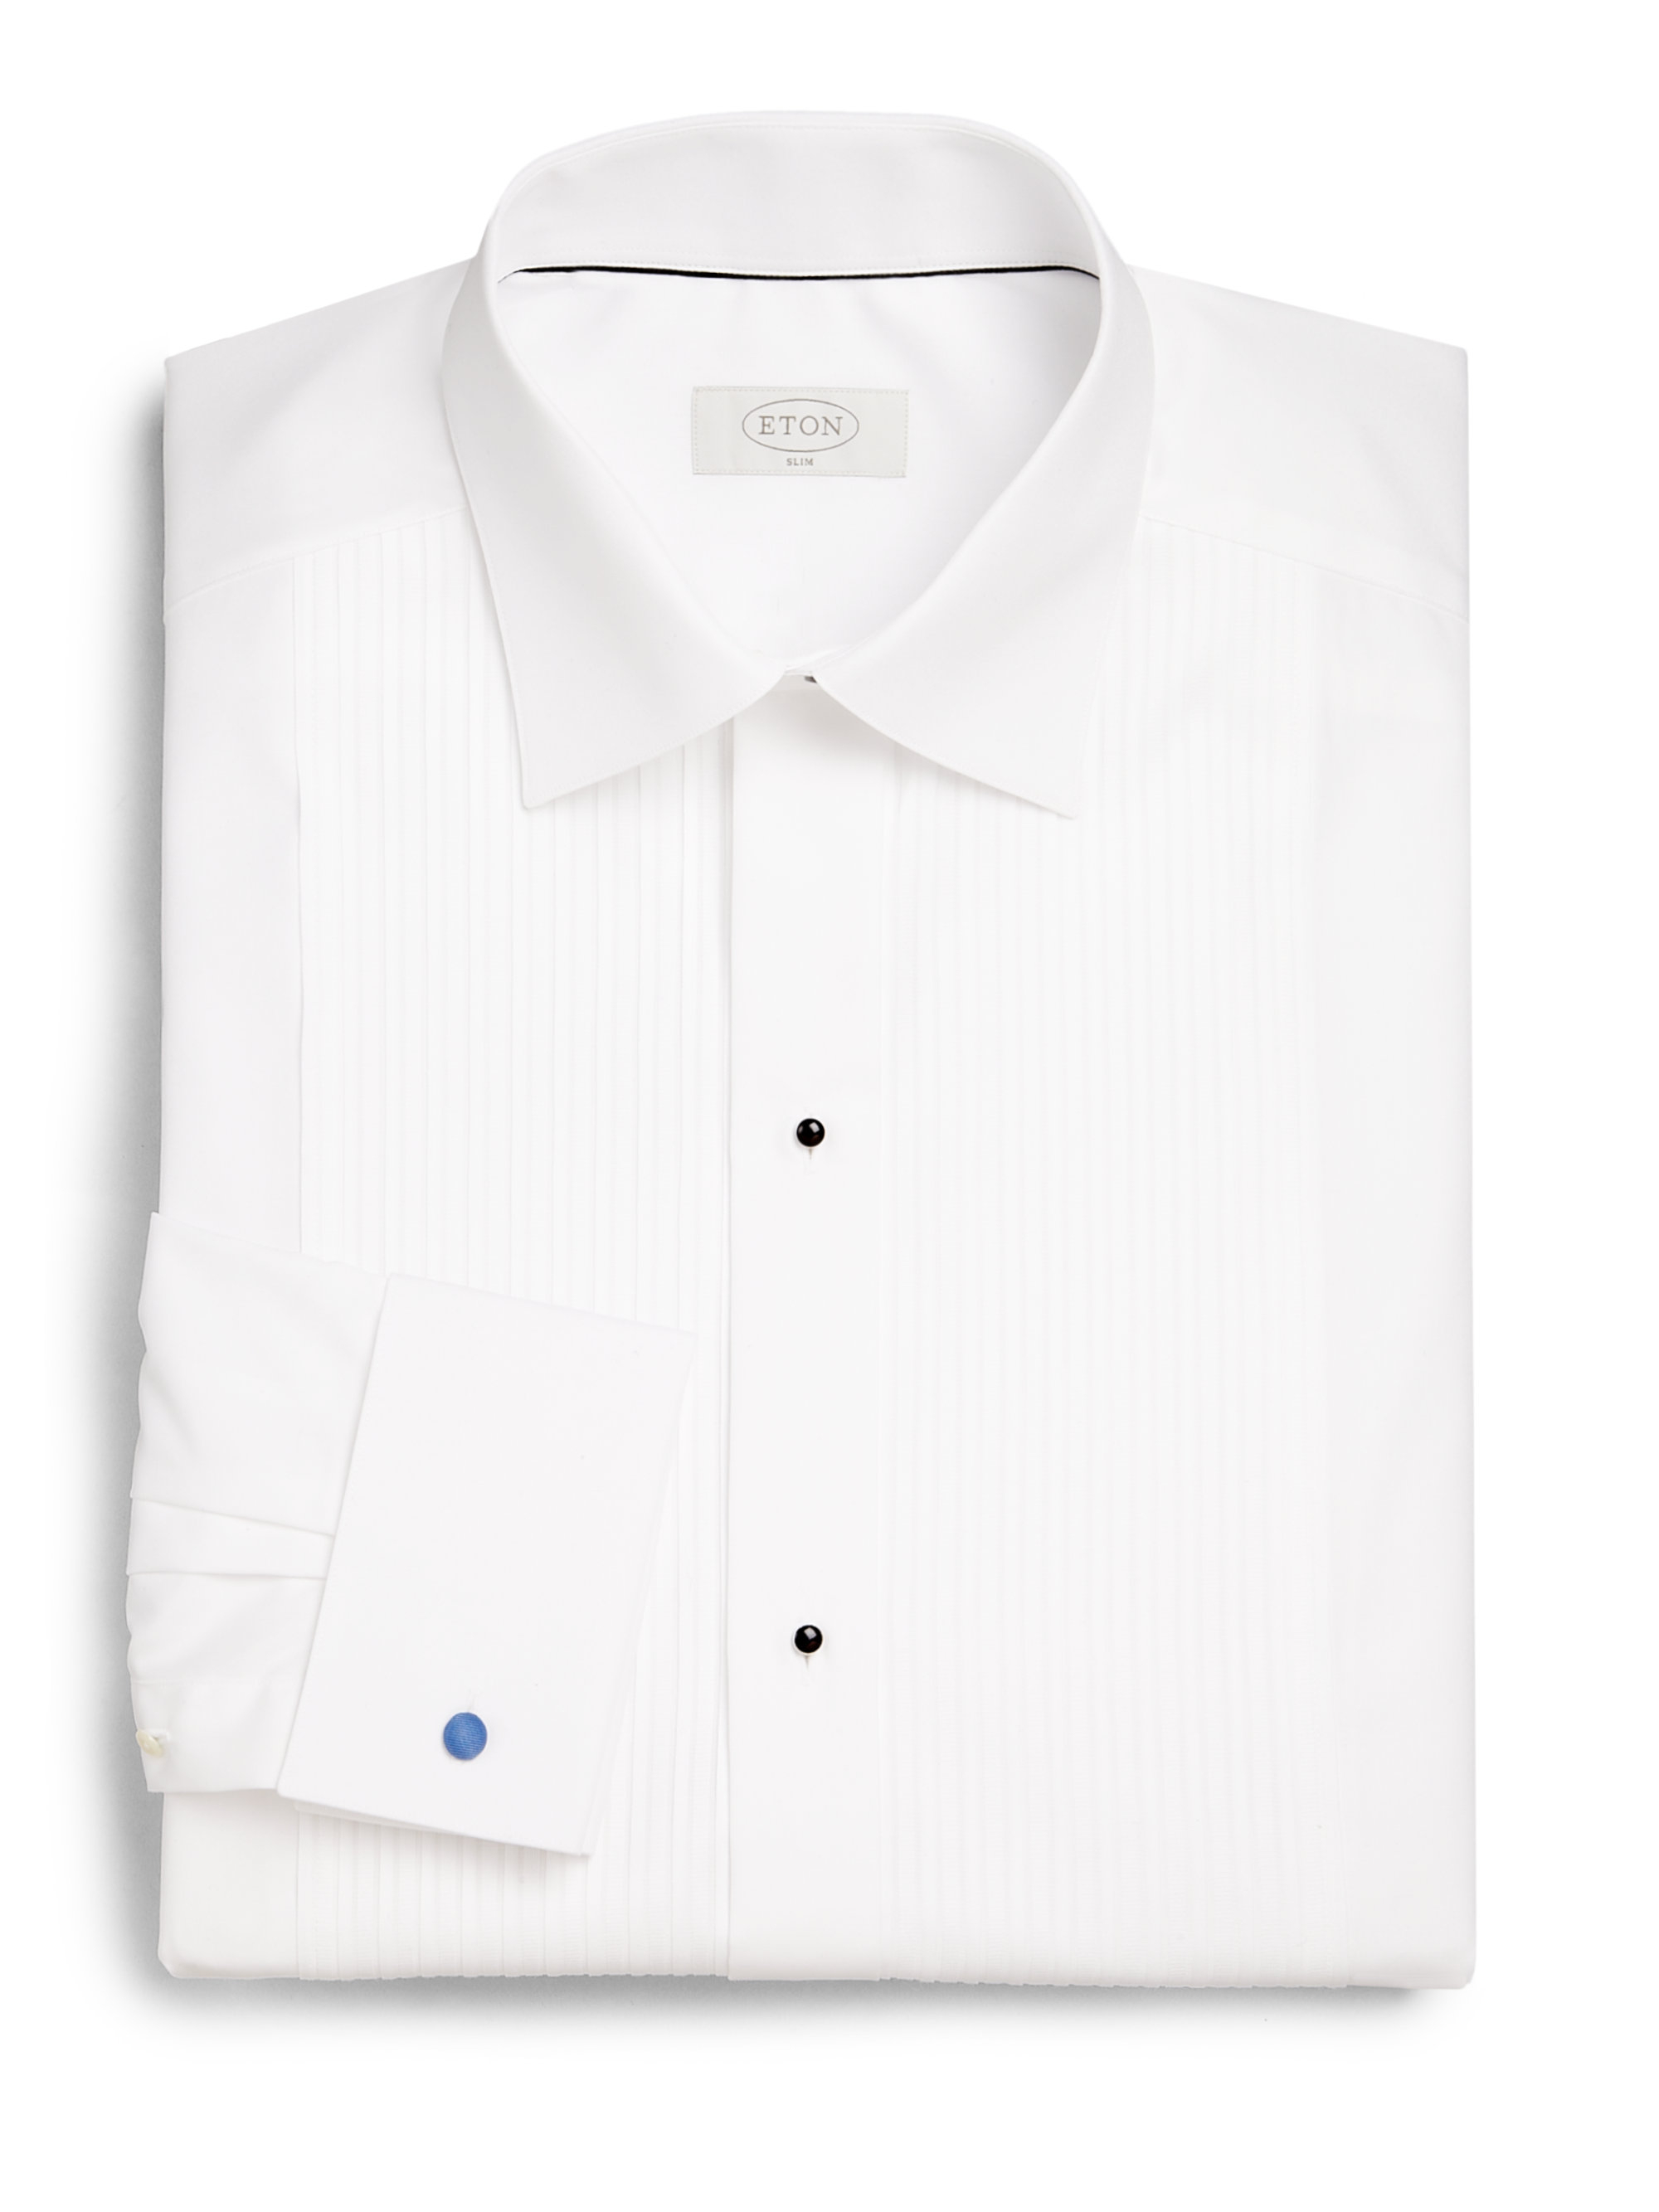 Eton of sweden slim fit french cuff pleated dress shirt in White french cuff shirt slim fit